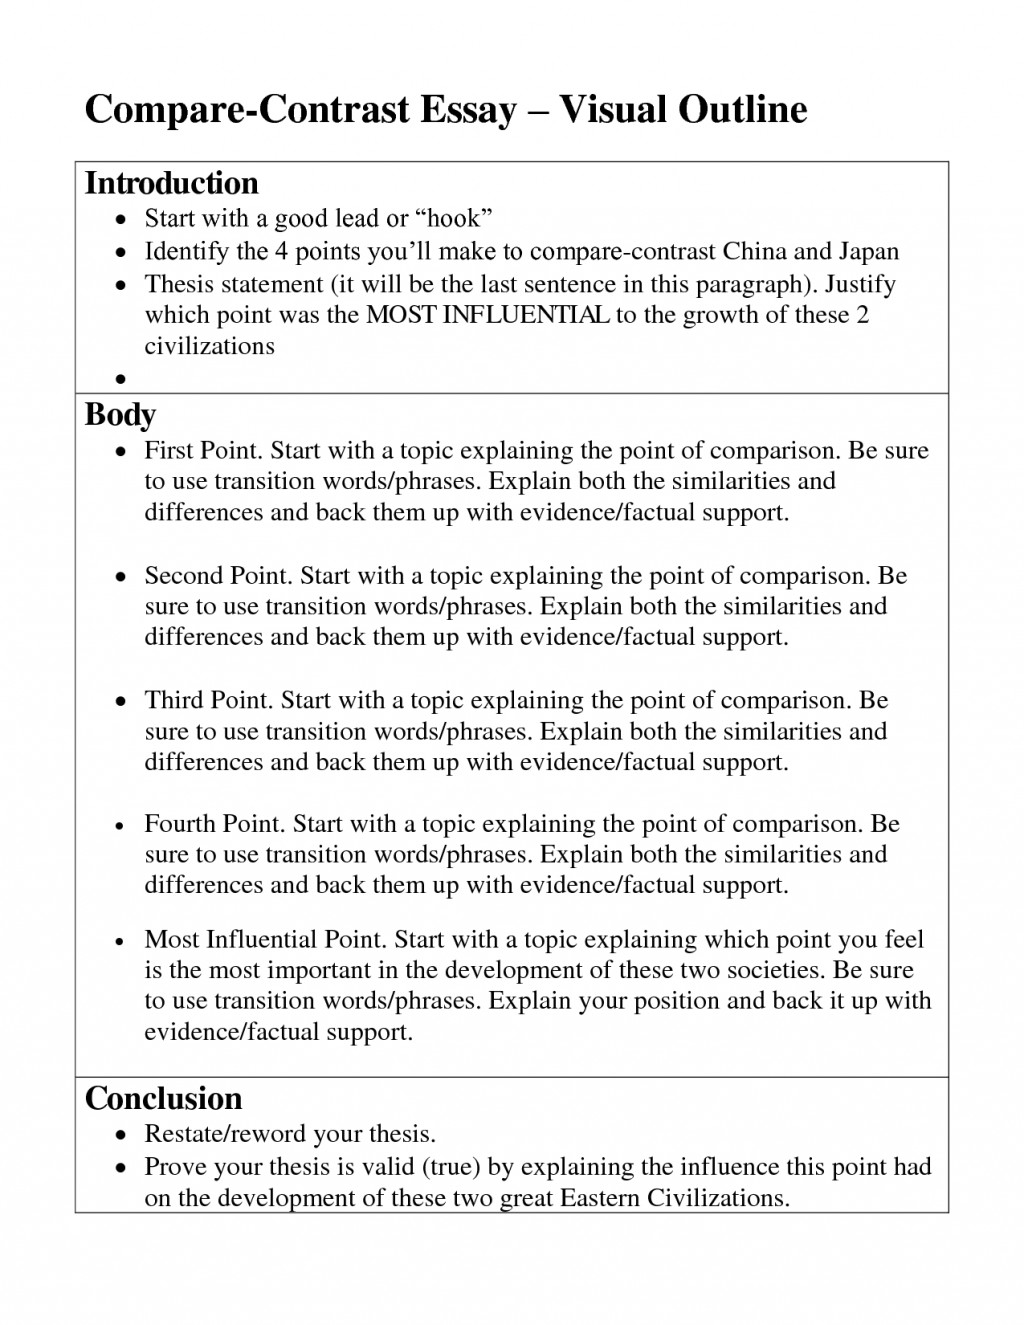 005 How To Start Research Paper Frightening Paragraph Your First Body In A Conclusion Large